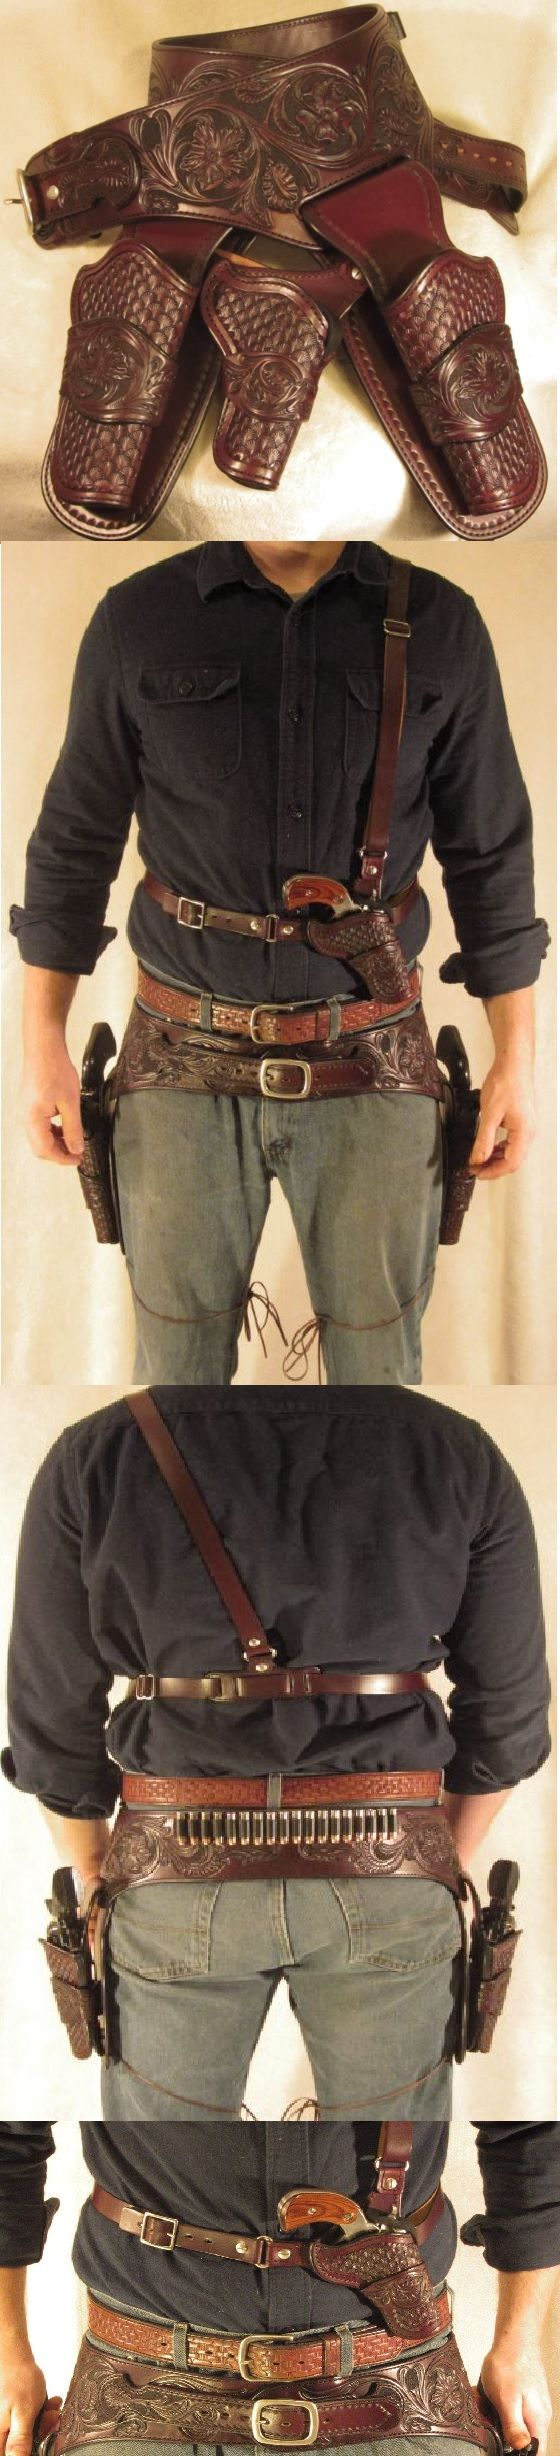 3 pistol western gun belt and shoulder rig by Mason Anderson at Shield Custom Leather.